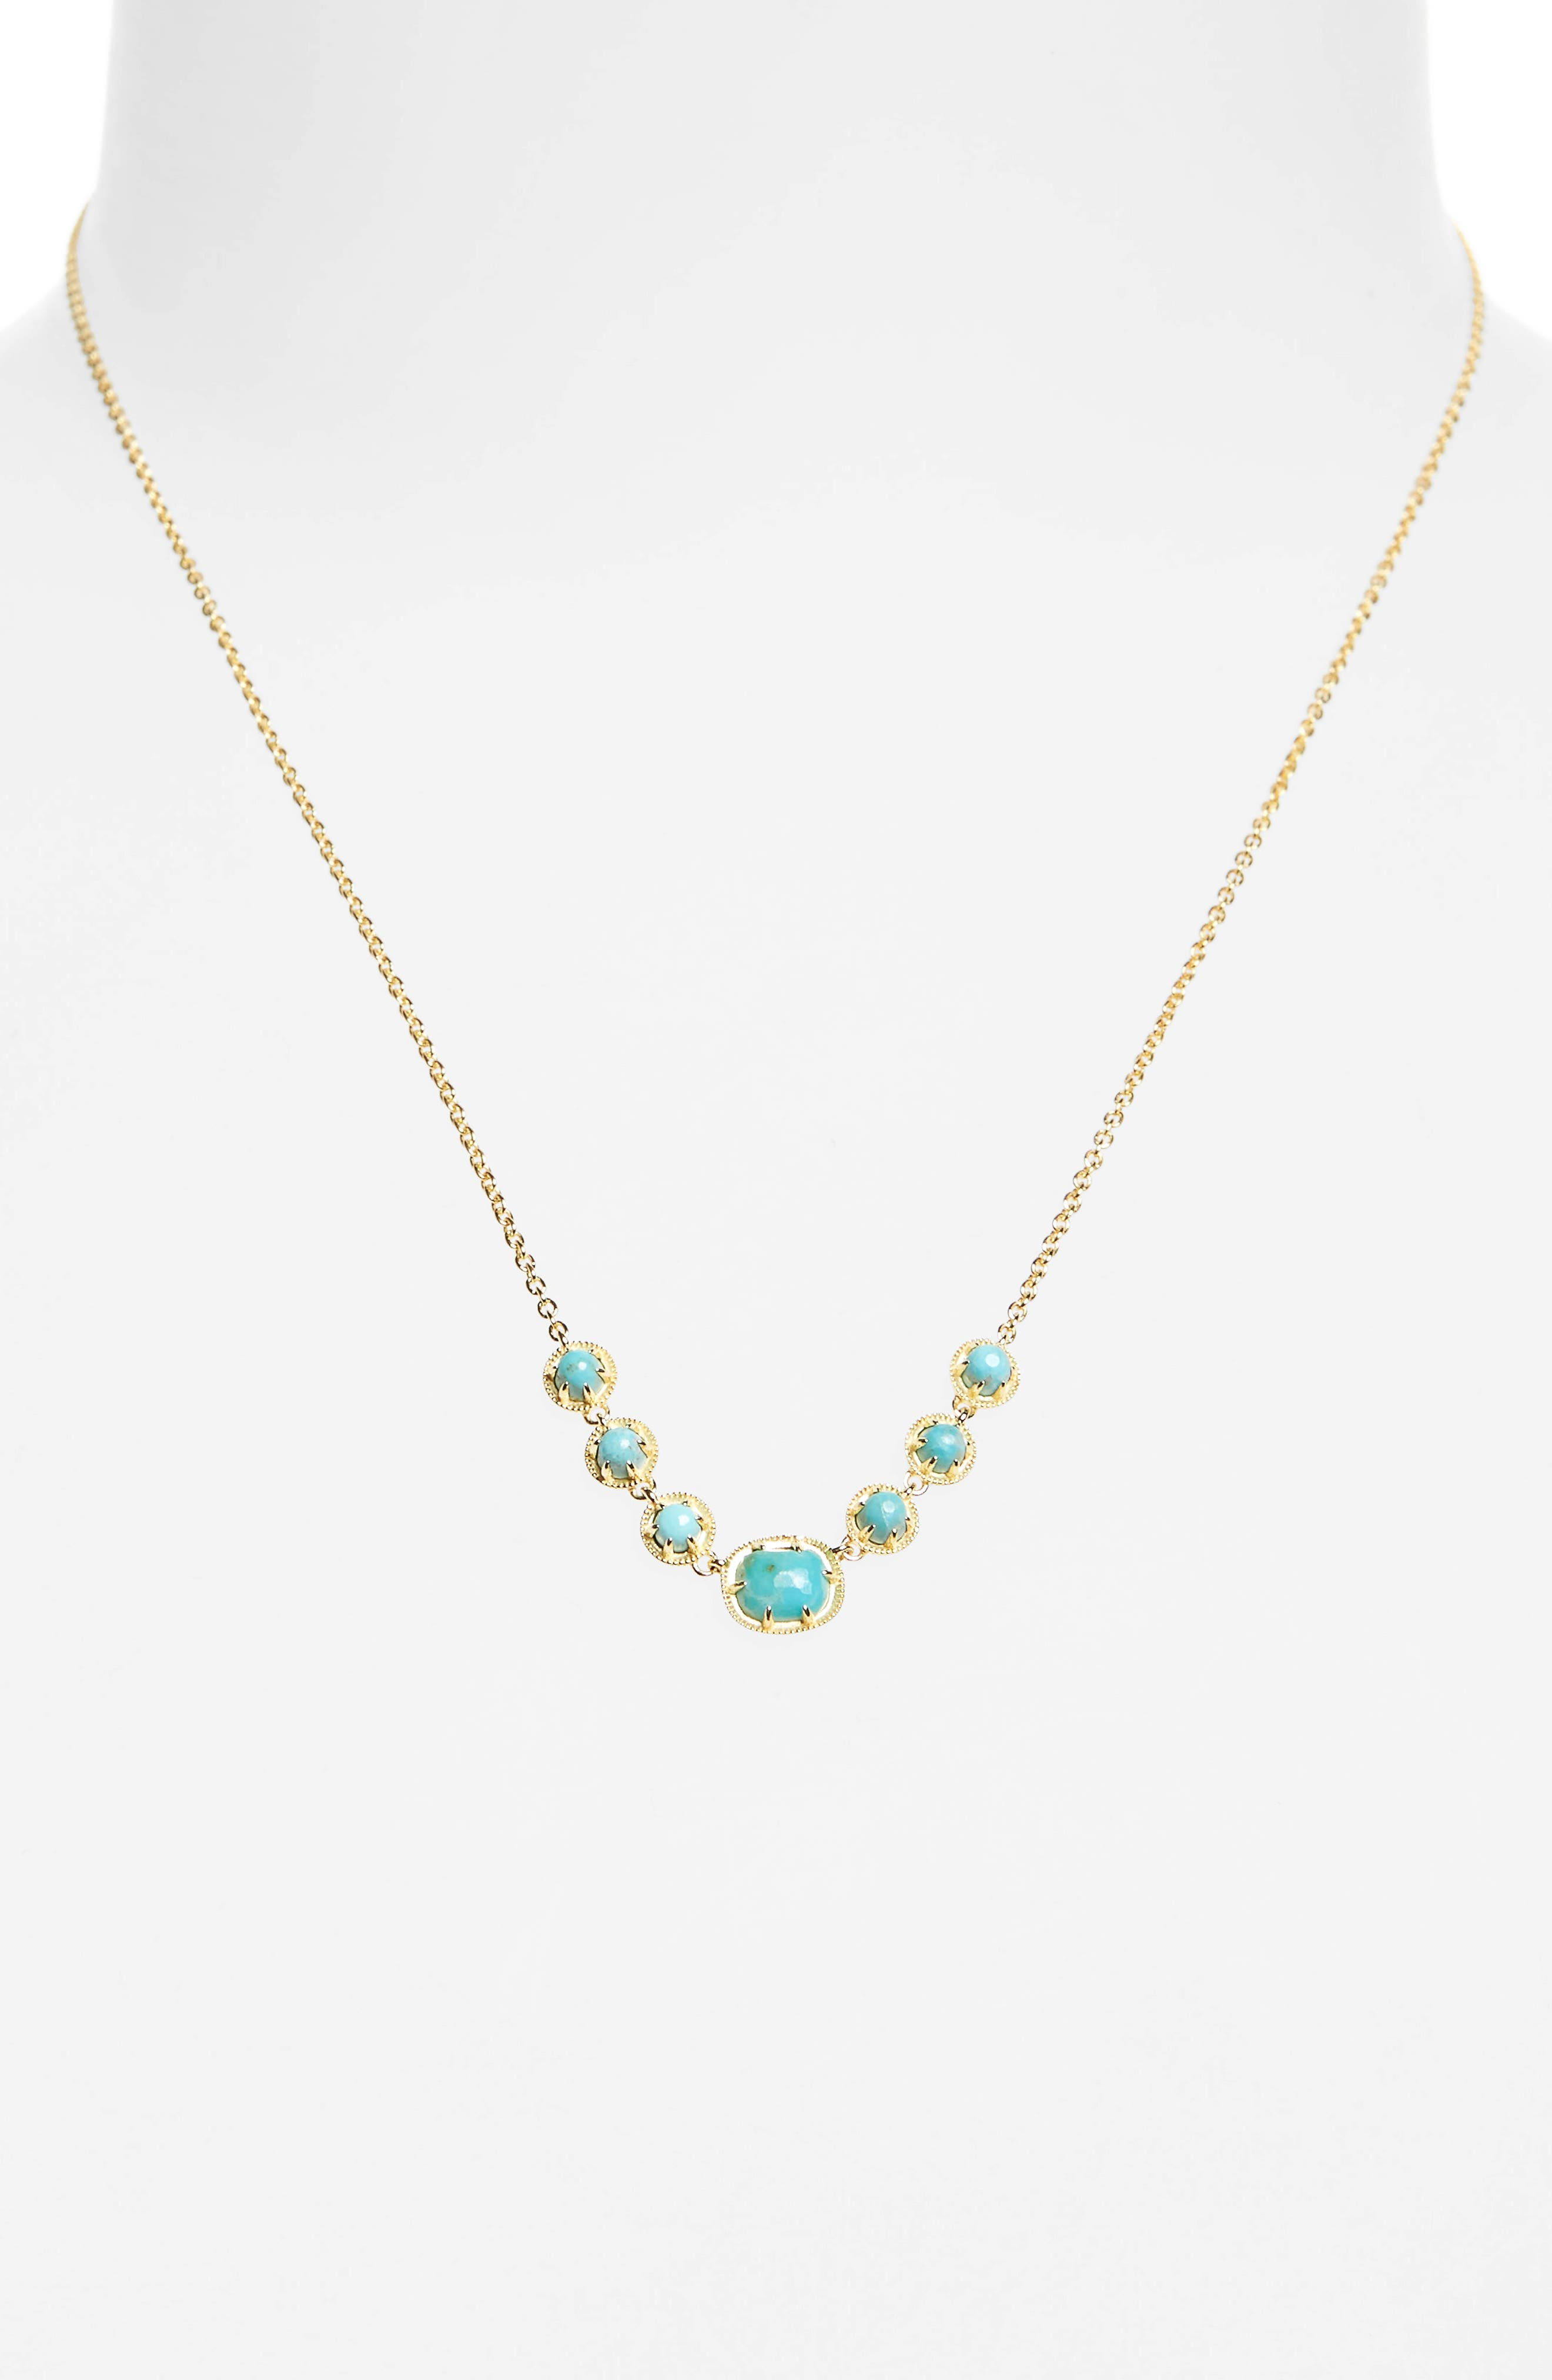 Semiprecious Stone Collar Necklace,                             Alternate thumbnail 2, color,                             Turquoise/ Gold